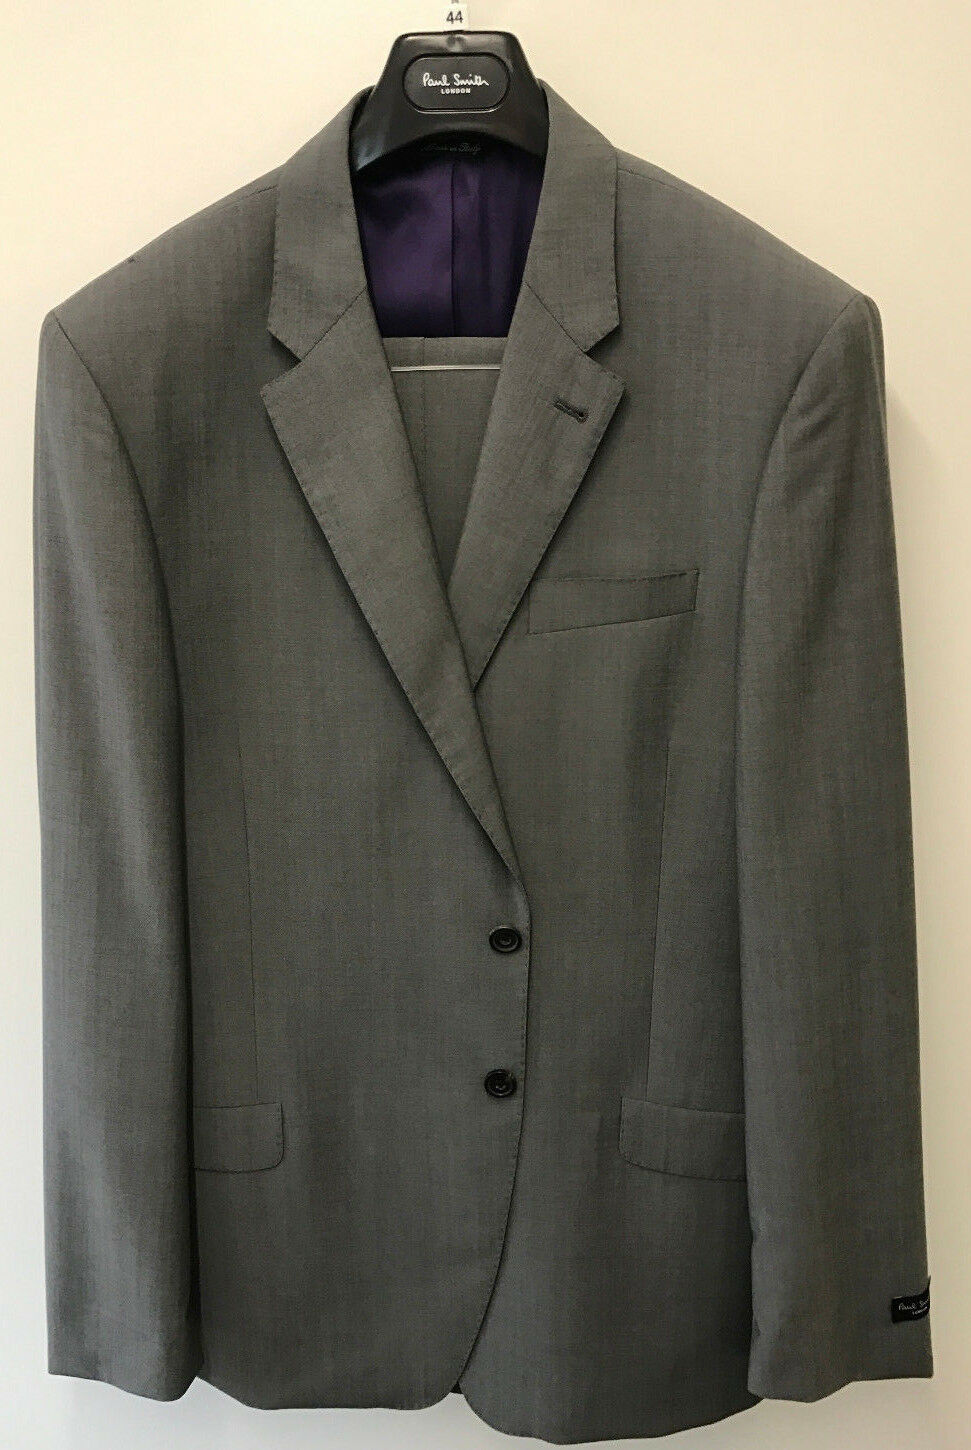 Paul Smith TRAVEL SUIT BYARD Mid Grau Slim Fit UK44L EU54L